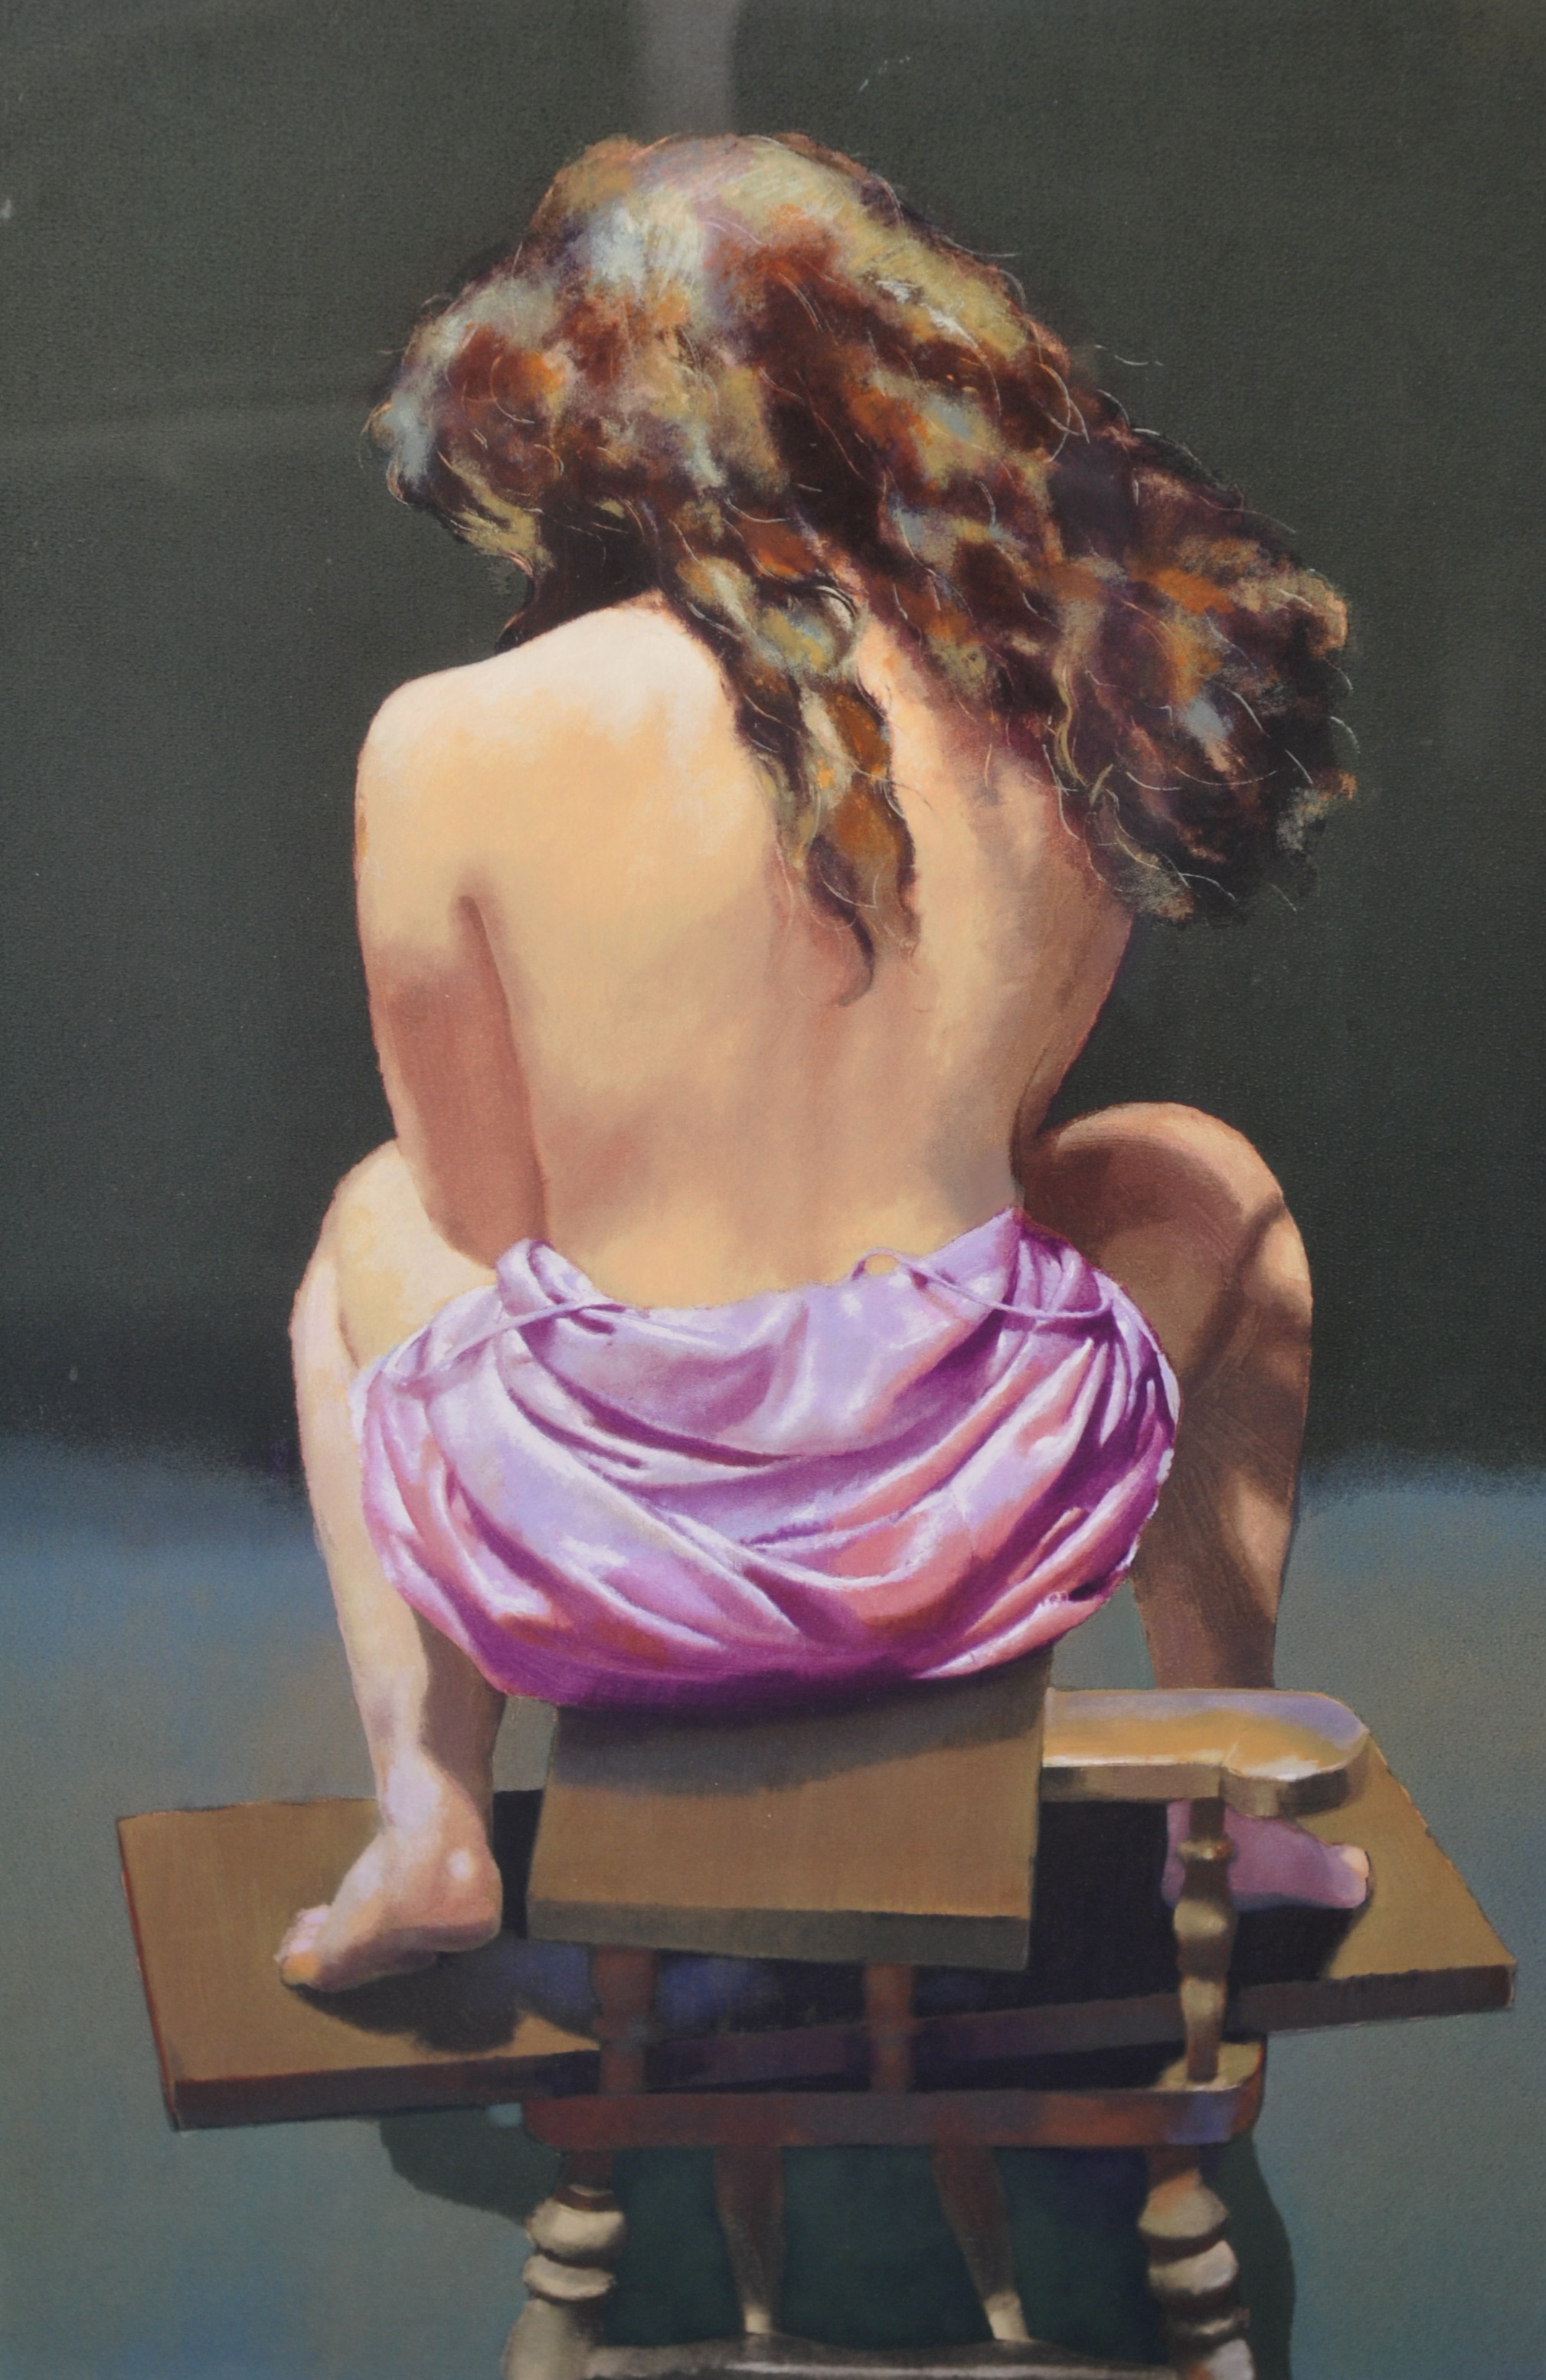 Lot 061 - Robert Lenkiewicz (1941-2002) 'Esther Rear view' Project 18, 1994, number 311/ 375, with